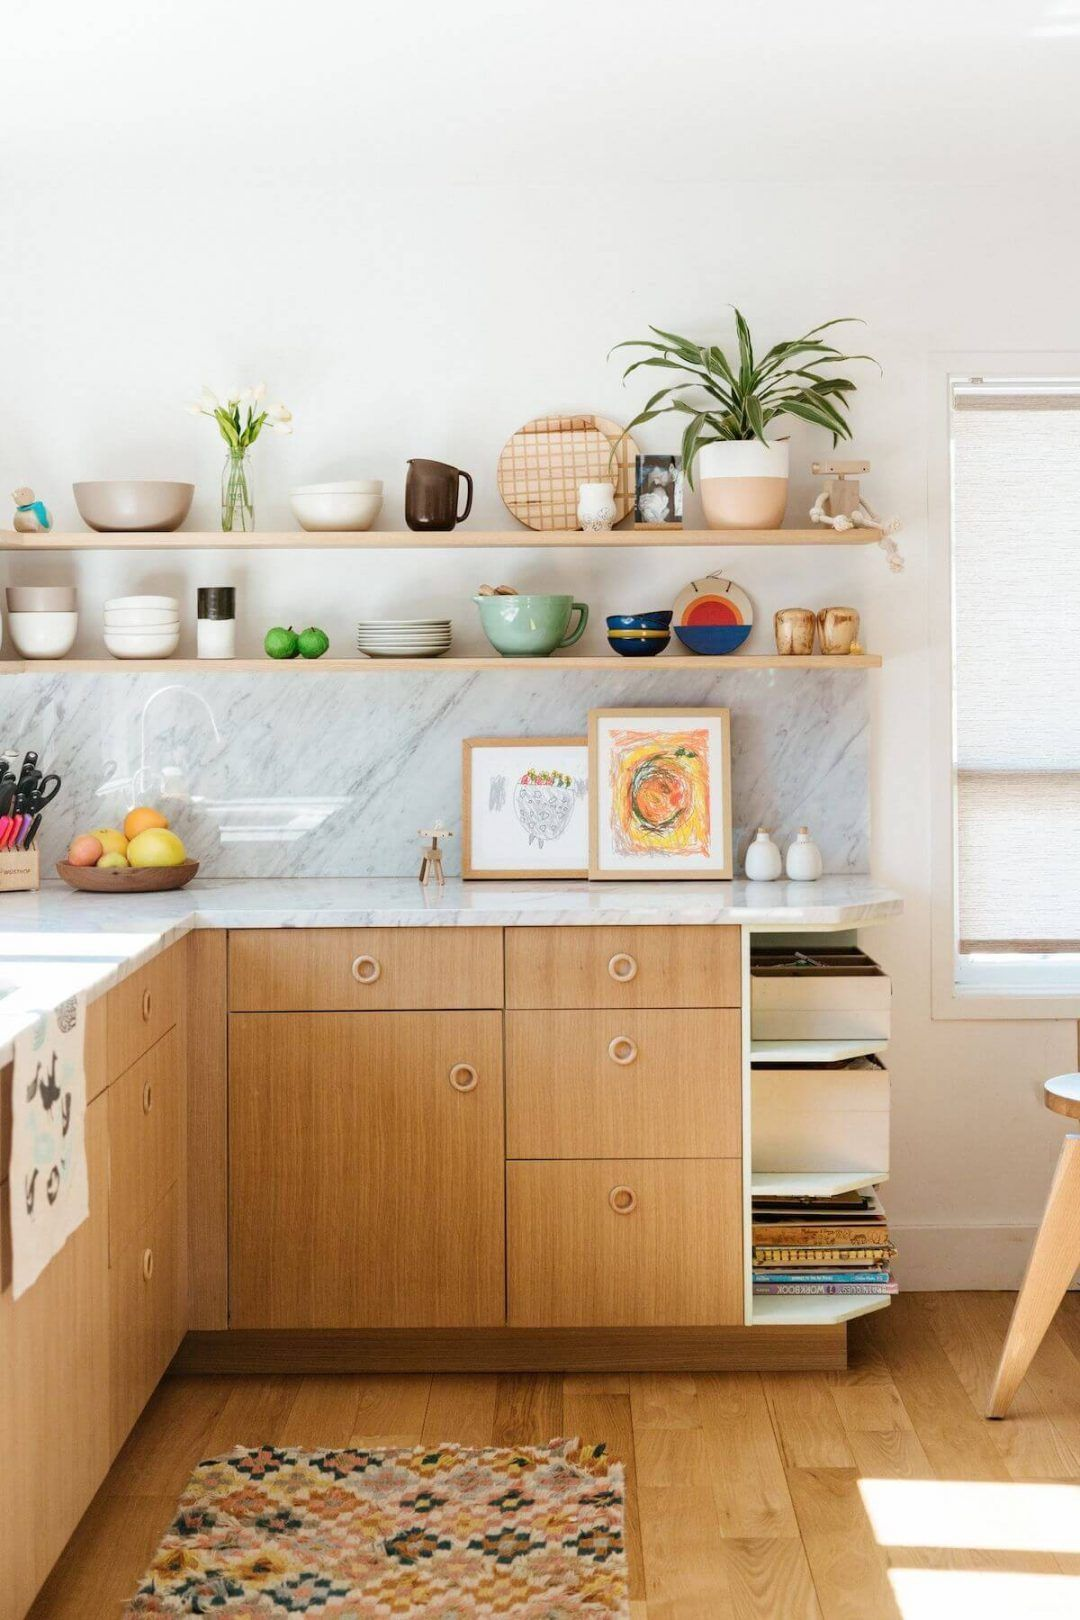 25 Mid Century Modern Kitchen Ideas To Beautify Your Cooking Area - 7Ce593561F2B0659178843Ec3133Bc32